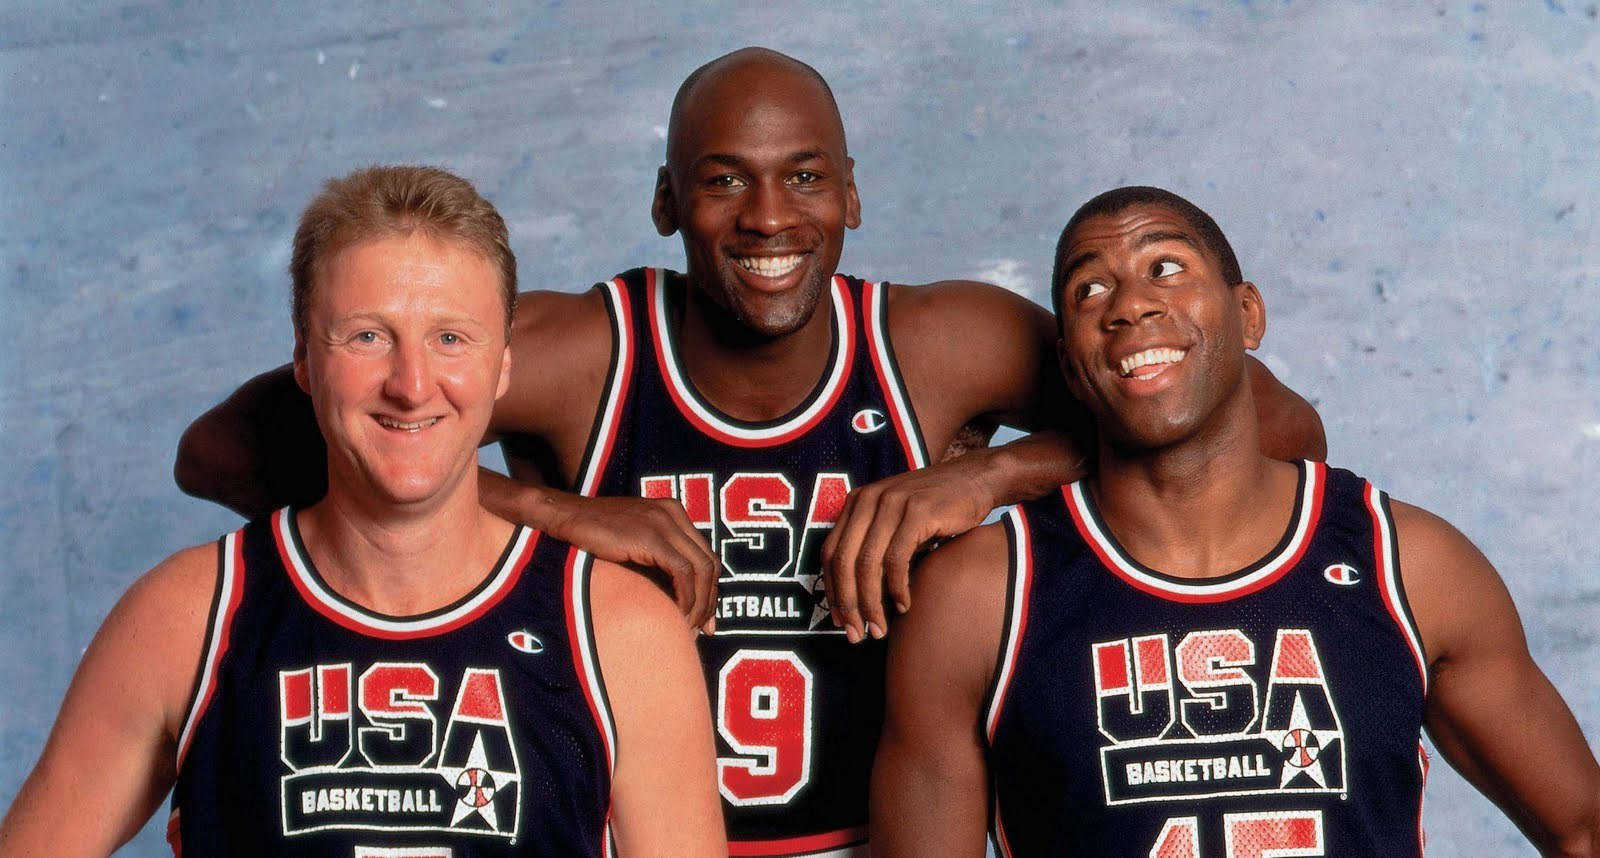 Can Kobe Bryant Be Considered The Best Nba Player Ever further The Olympics The Dream Team Wins Gold In 1992 additionally John Wall Vs High School Kid furthermore Which NBA Player Has The Most Beautiful Shooting Form besides Michael Jordans 12 Best Days Basketball Court. on best basketball player ever bird